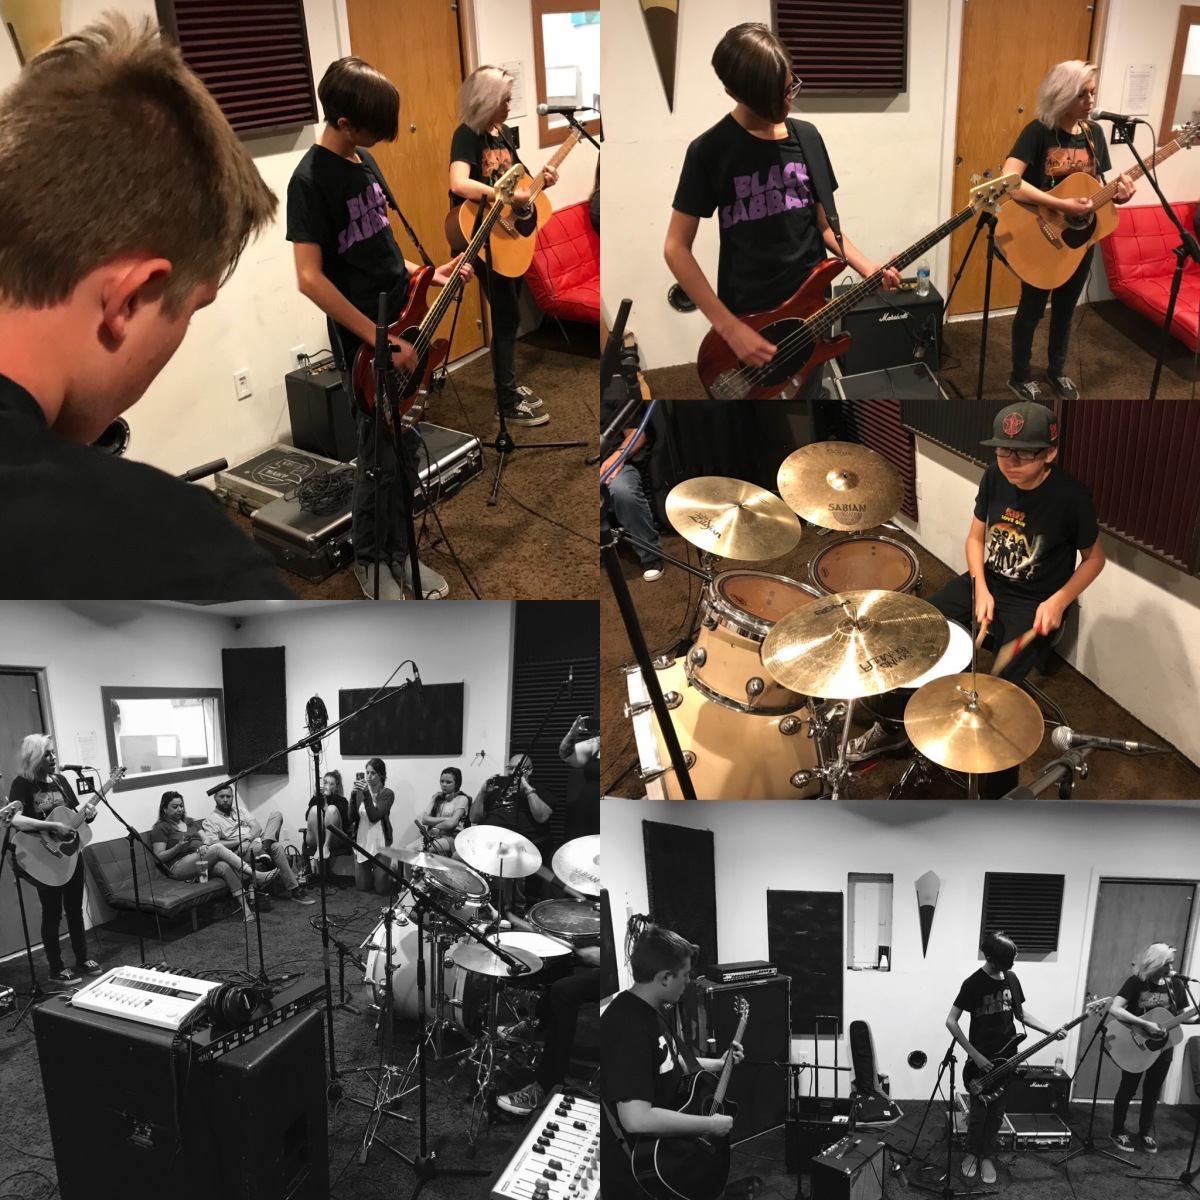 Invictus at Vibratory Productions